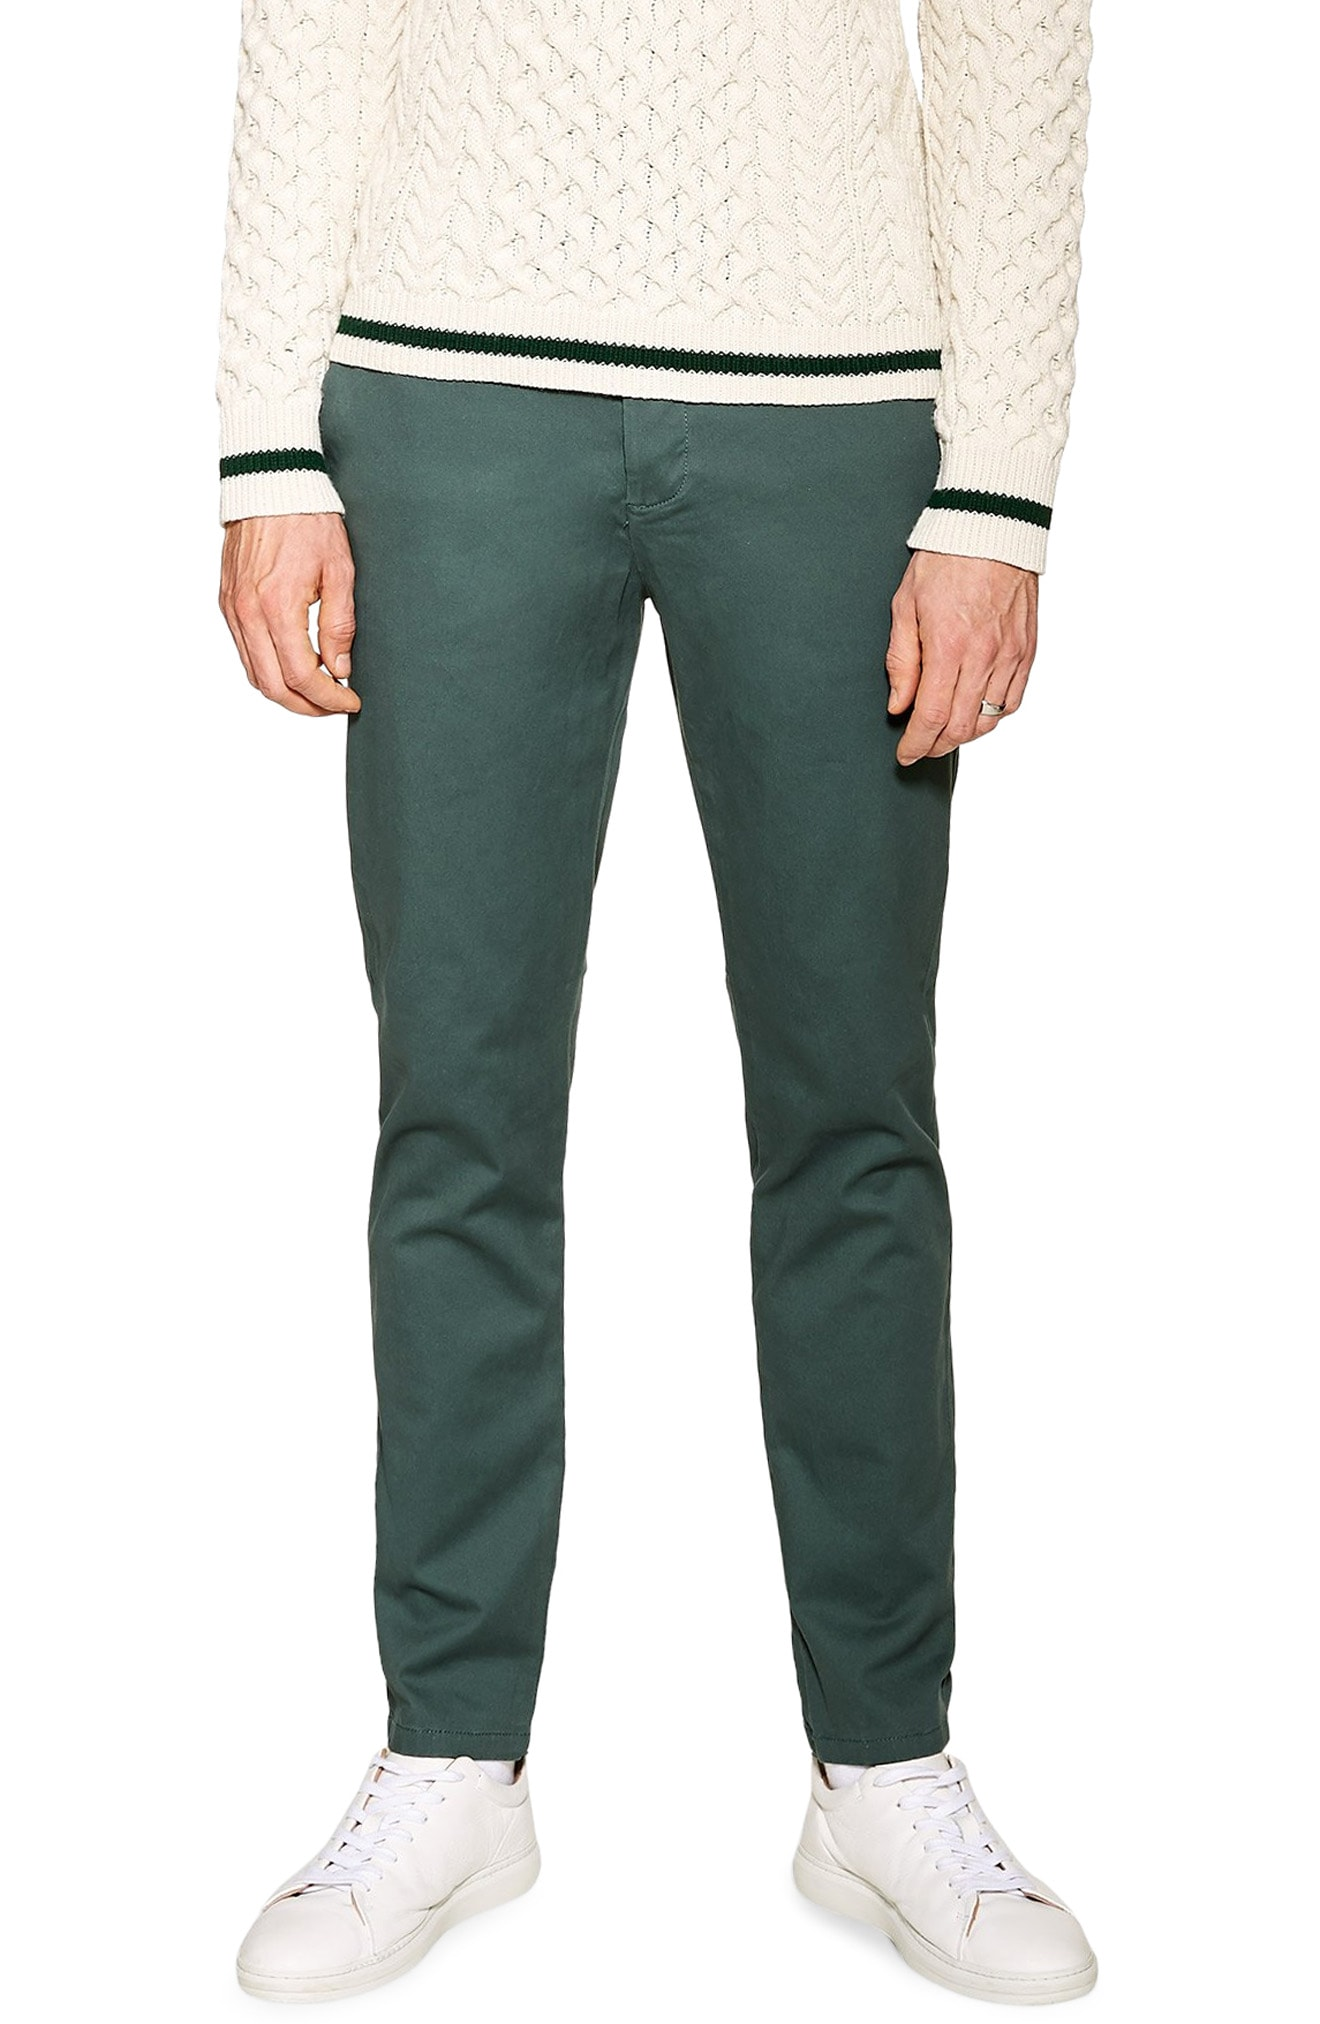 Men's Green Chinos & Khaki Pants | Nordstrom